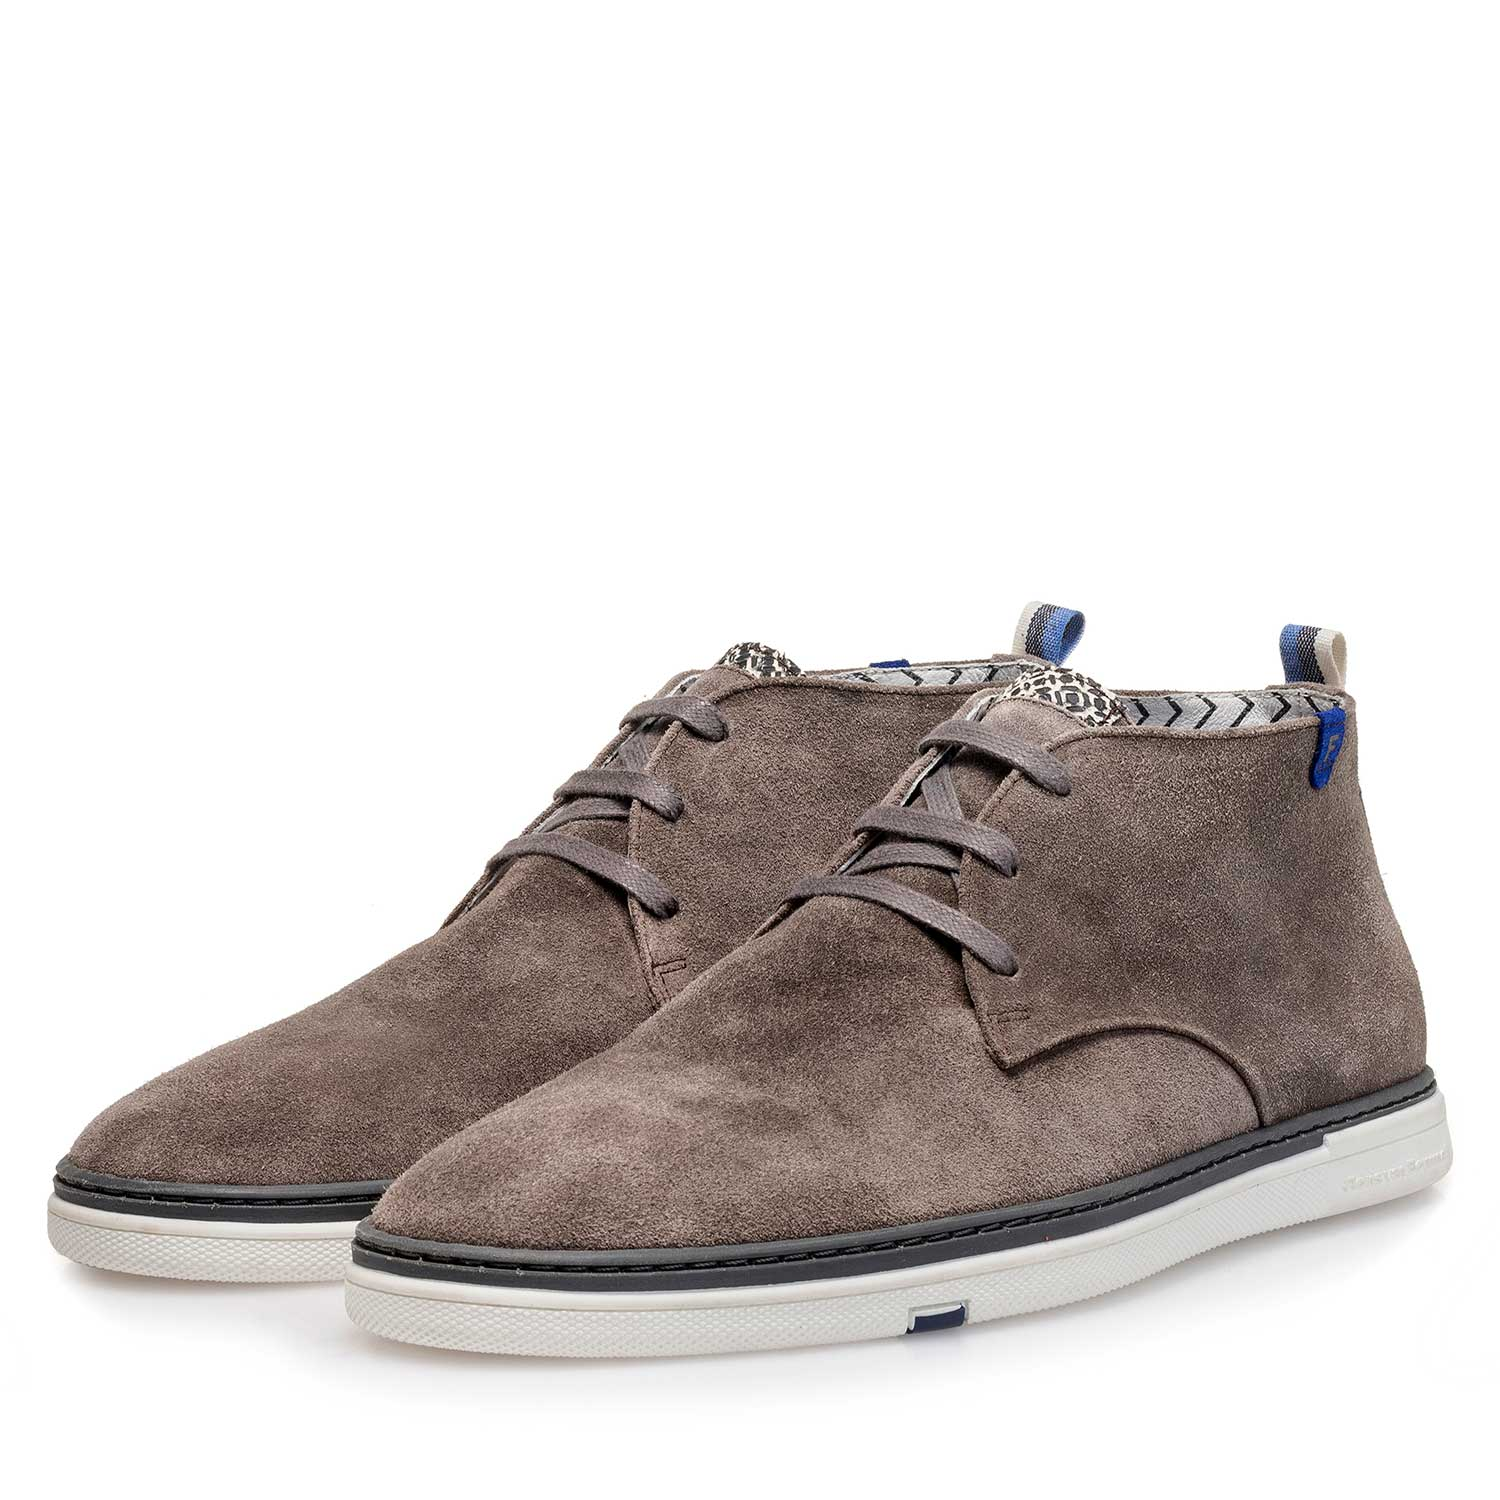 10502/03 - Taupe-coloured slightly buffed suede leather boot